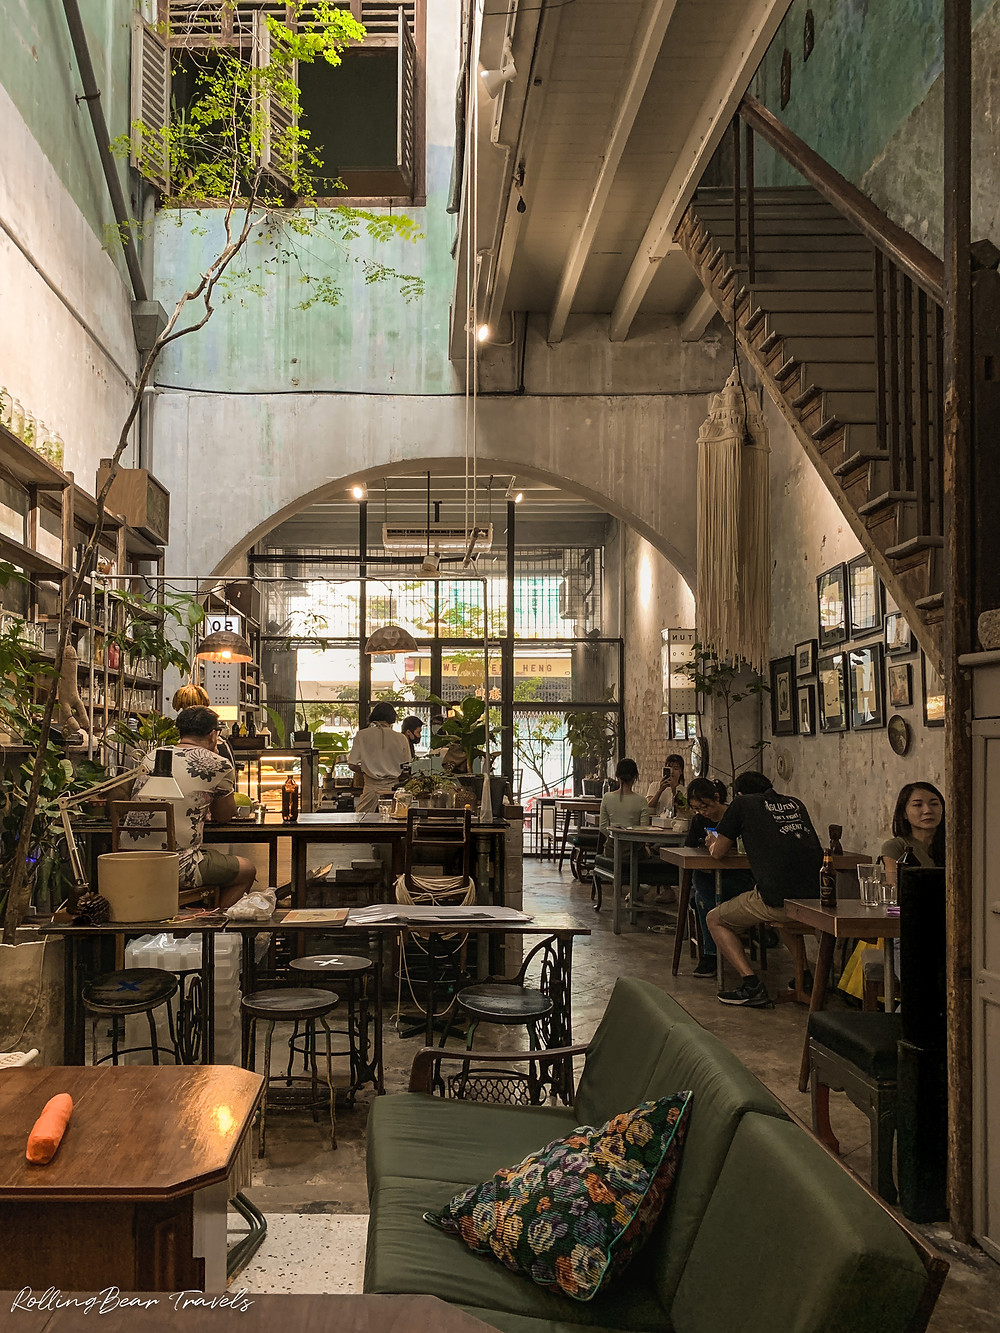 Narrow Marrow Cafe review, Georgetown, Penang, Malaysia | RollingBear Travels.